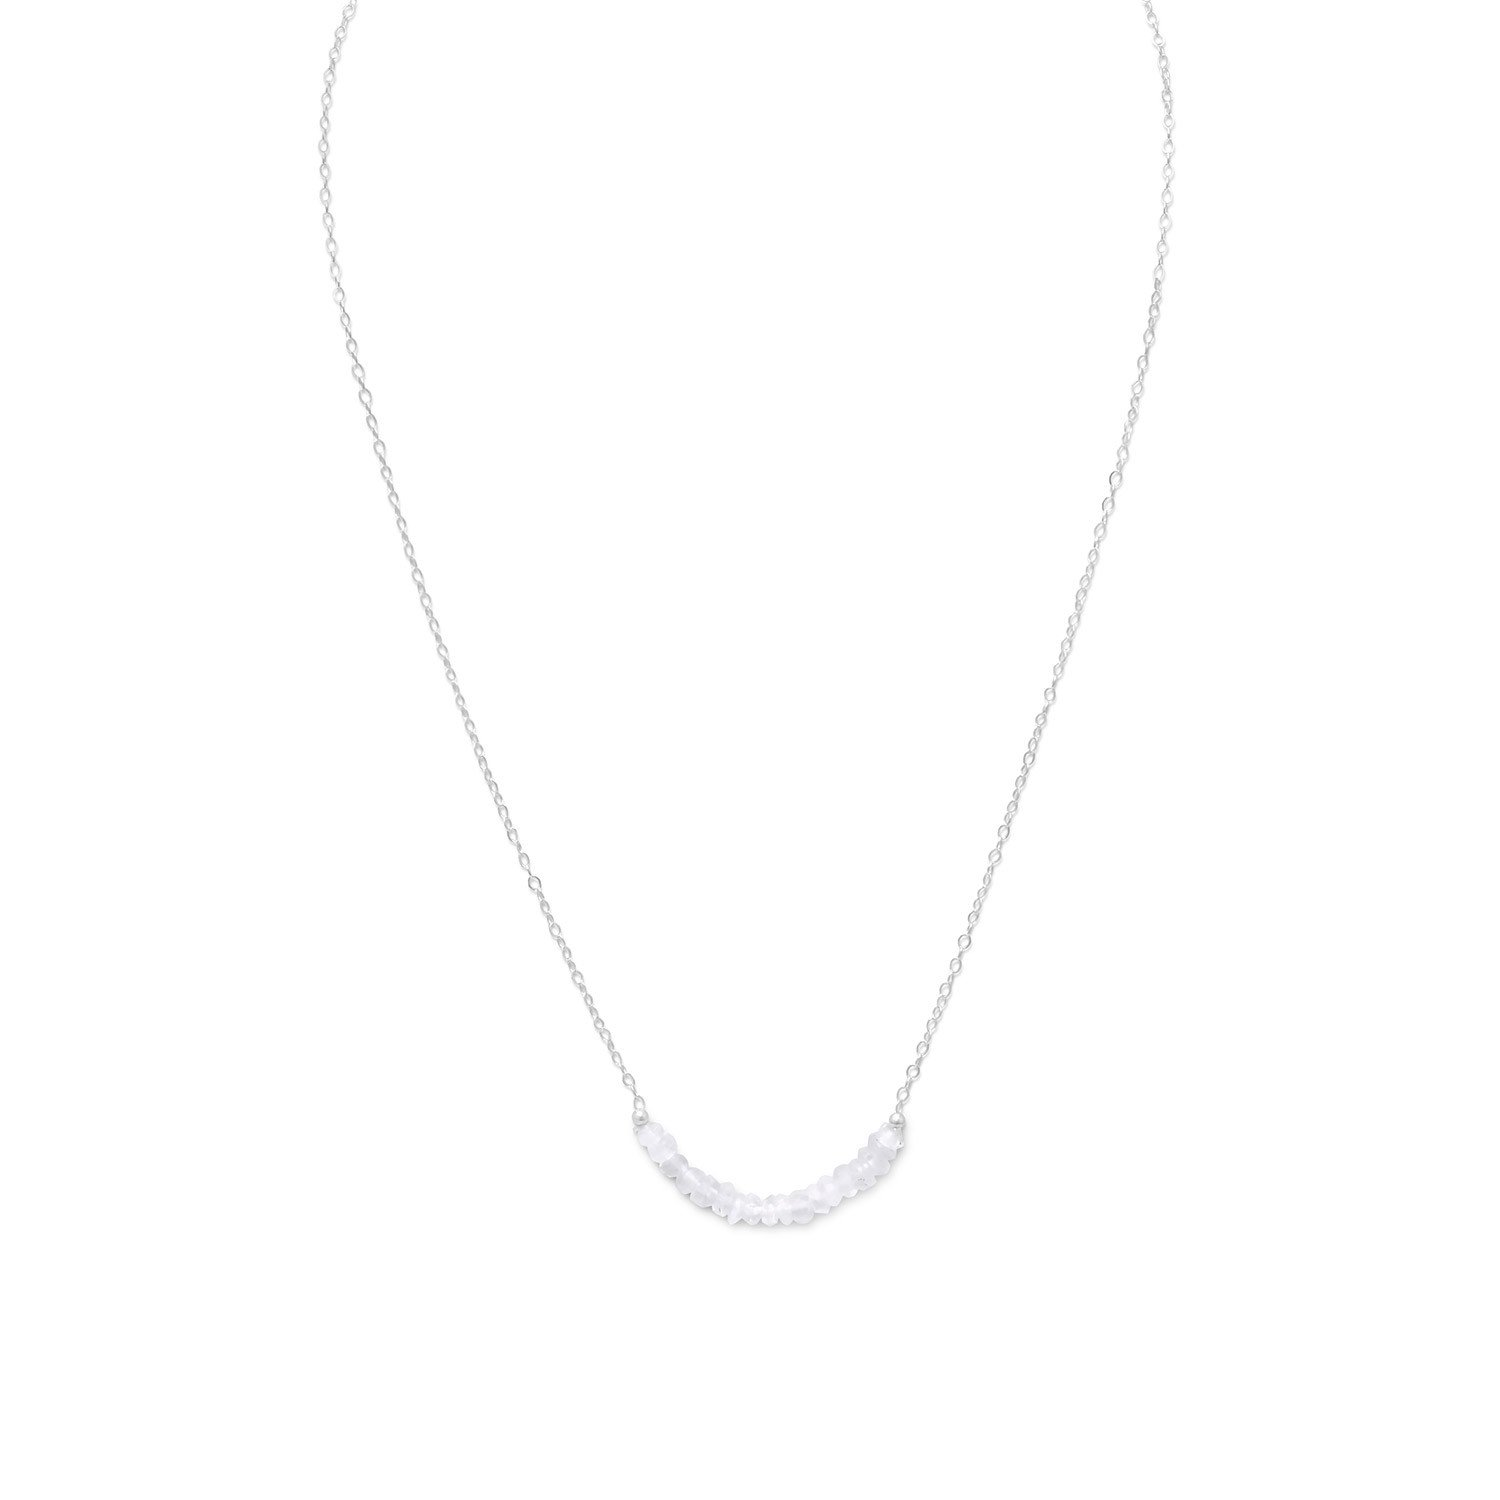 Faceted Rainbow Moonstone Bead Necklace – October Birthstone